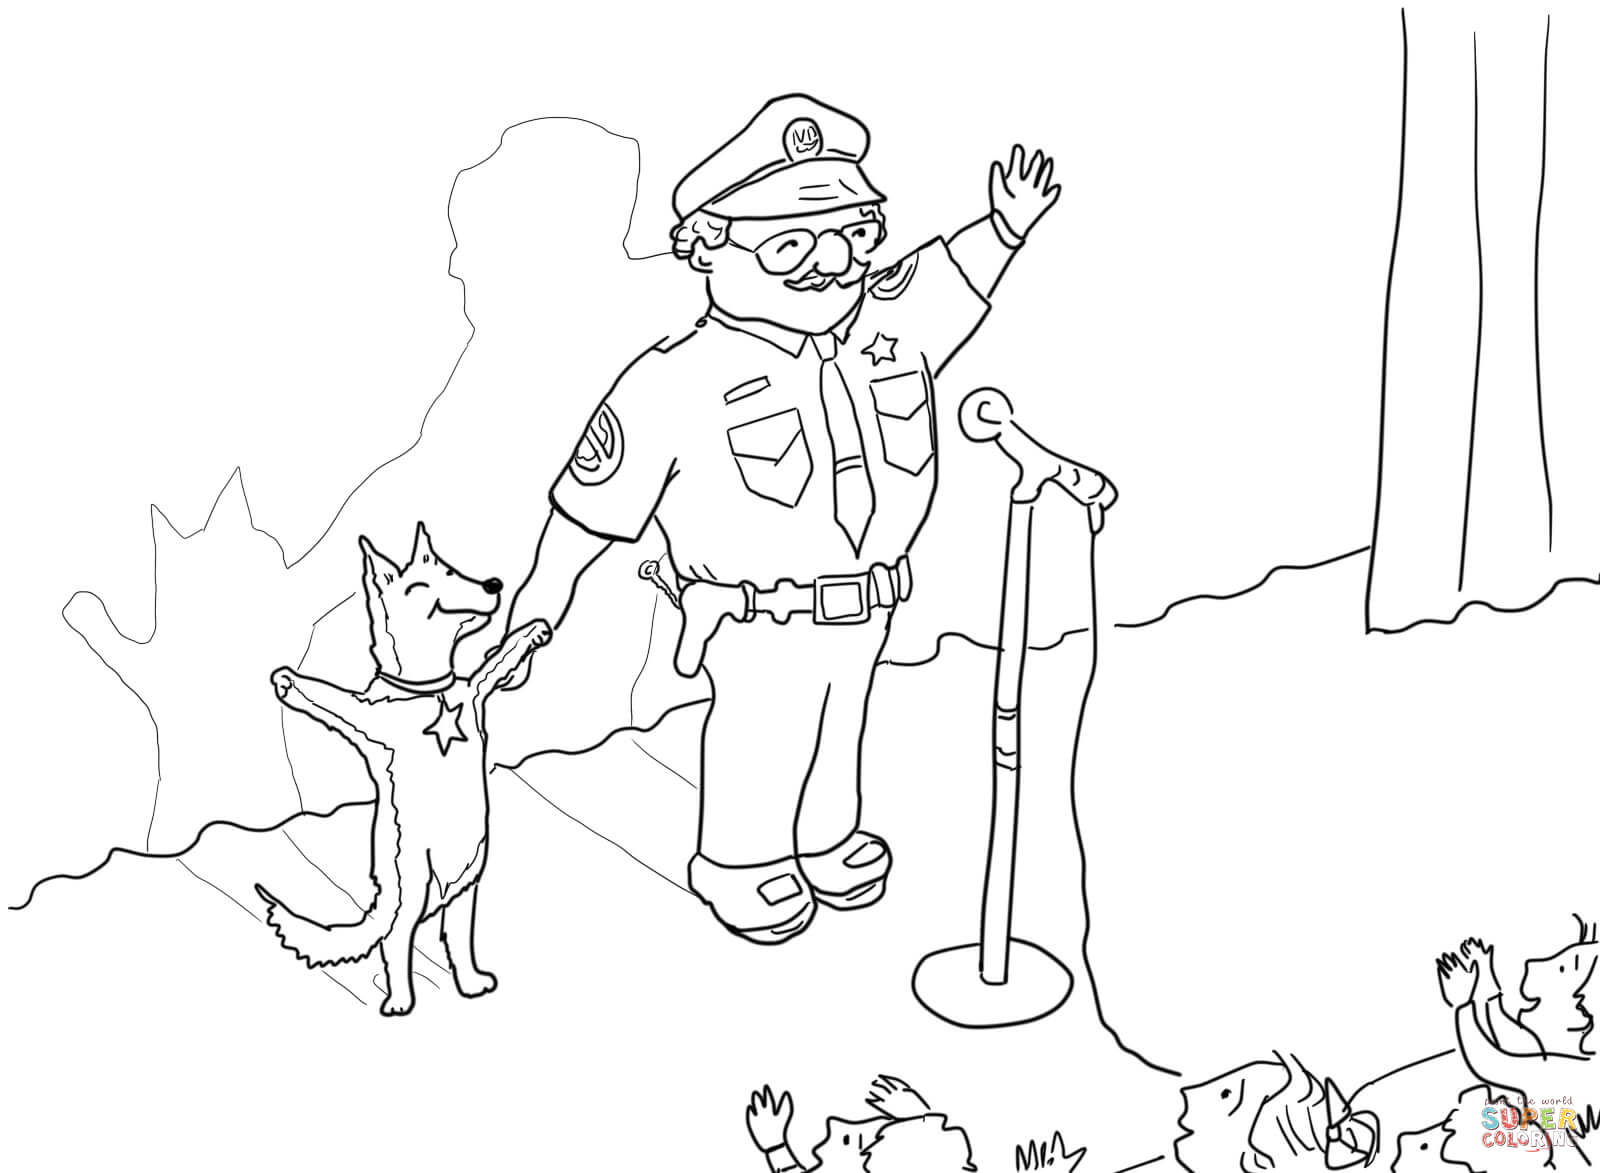 Clip Art Officer Buckle And Gloria Coloring Pages officer buckle and gloria coloring pages az taking a bow on stage page